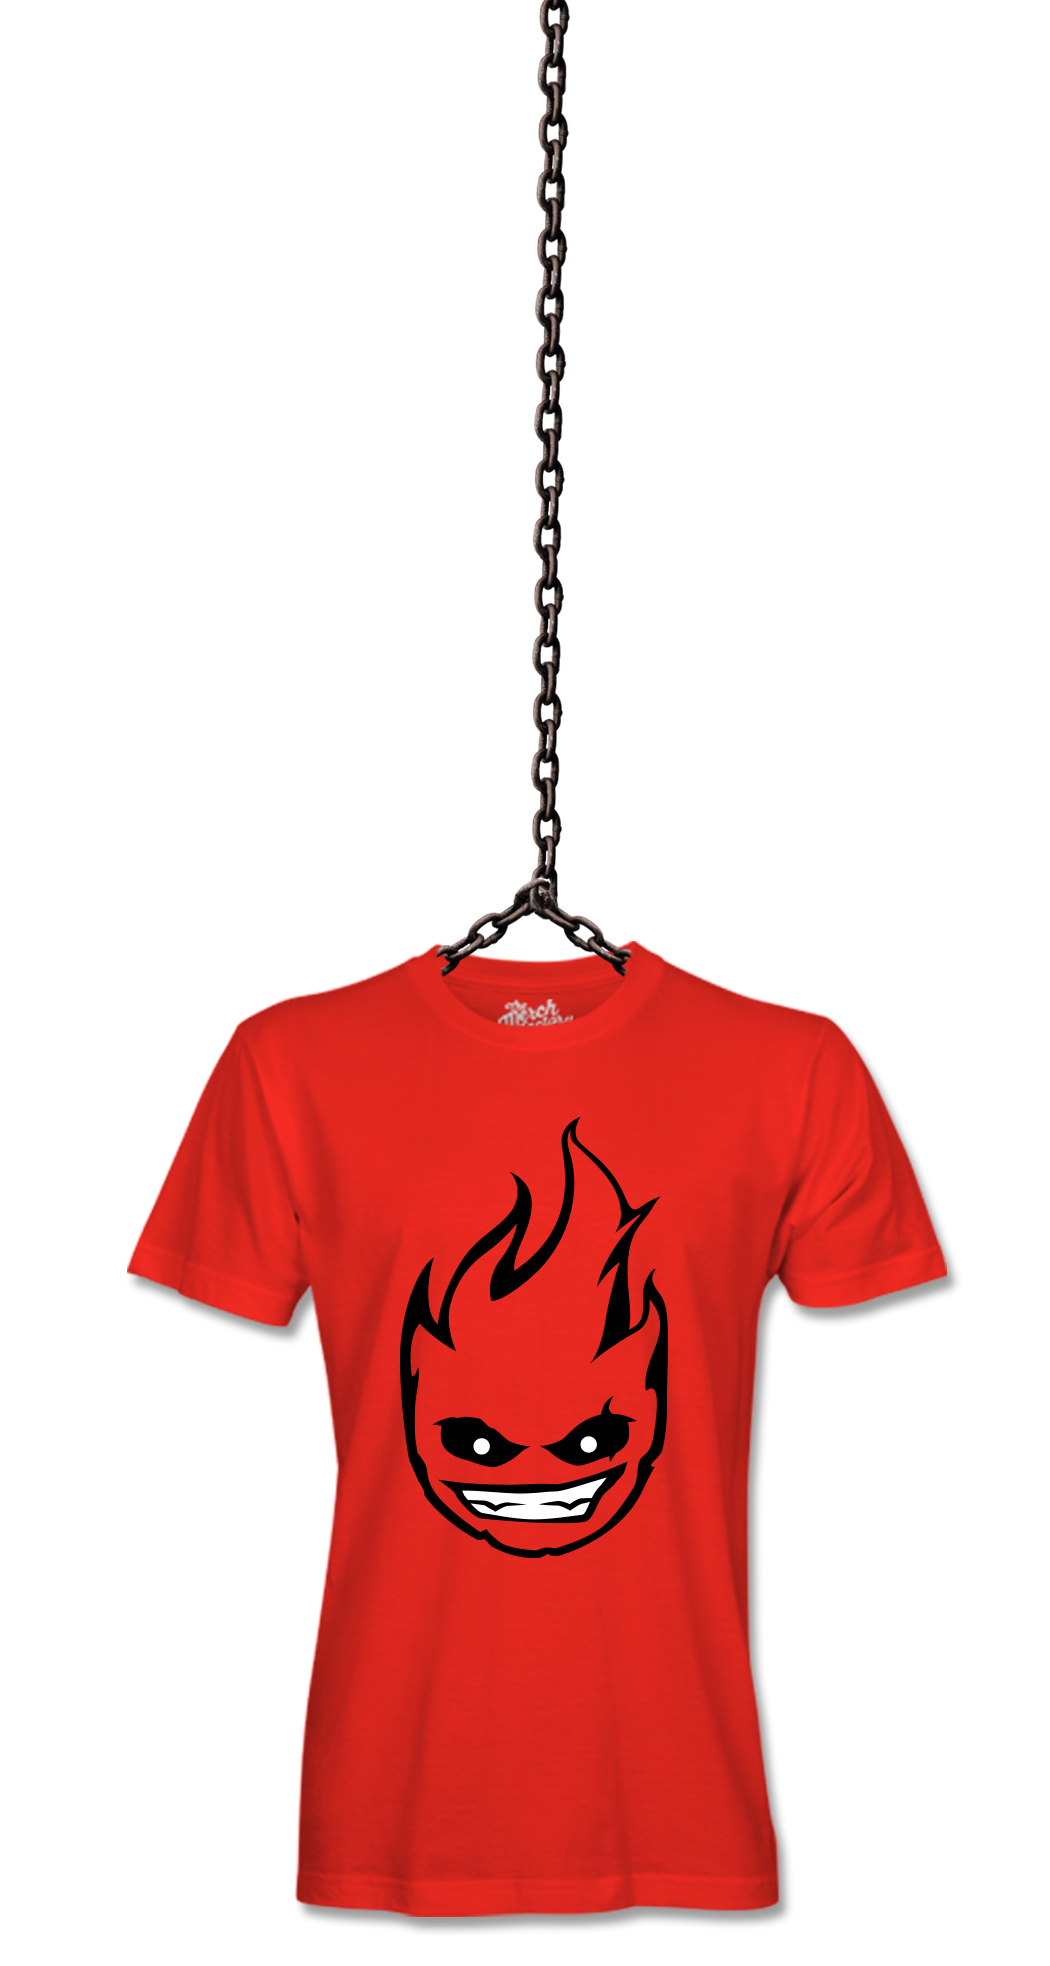 Dex Arson - Red tee hanging on chain